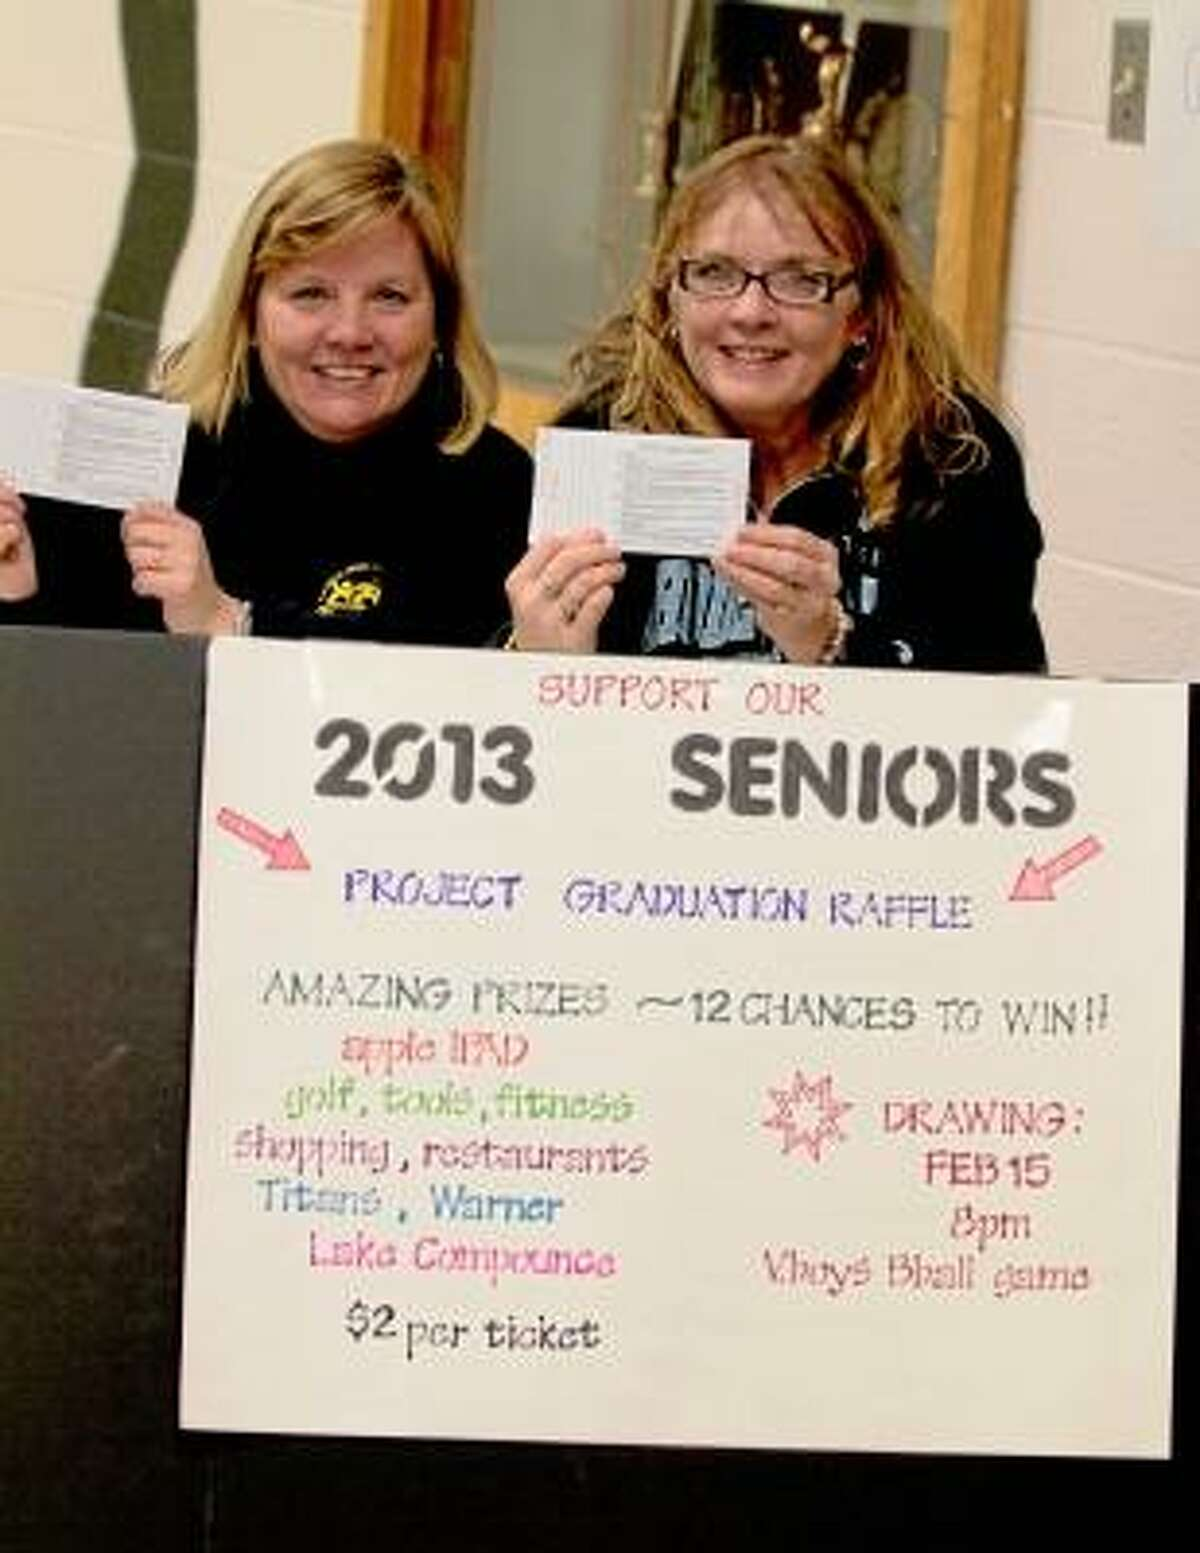 Photo by Marianne Killackey Angela Thompson and Kathi Peterson sold raffle tickets to benefit this year's Torrington High School Project Graduation at the girls' basketball game Friday night. Project Graduation is an all night, drug and alcohol free party that is designed to keep THS seniors safe on their graduation night. Ticket prizes this year include an iPad, a round of golf, a couples weekend away including hotel, Tickets to the Warner Theater and gift card to Backstage, $100 gift card to JC Pennys, gift card to Lowes and more. If interested in purchasing tickets, contact Kathi Peterson 860 482 6636 or Cathy Reynolds 860 480 4807.